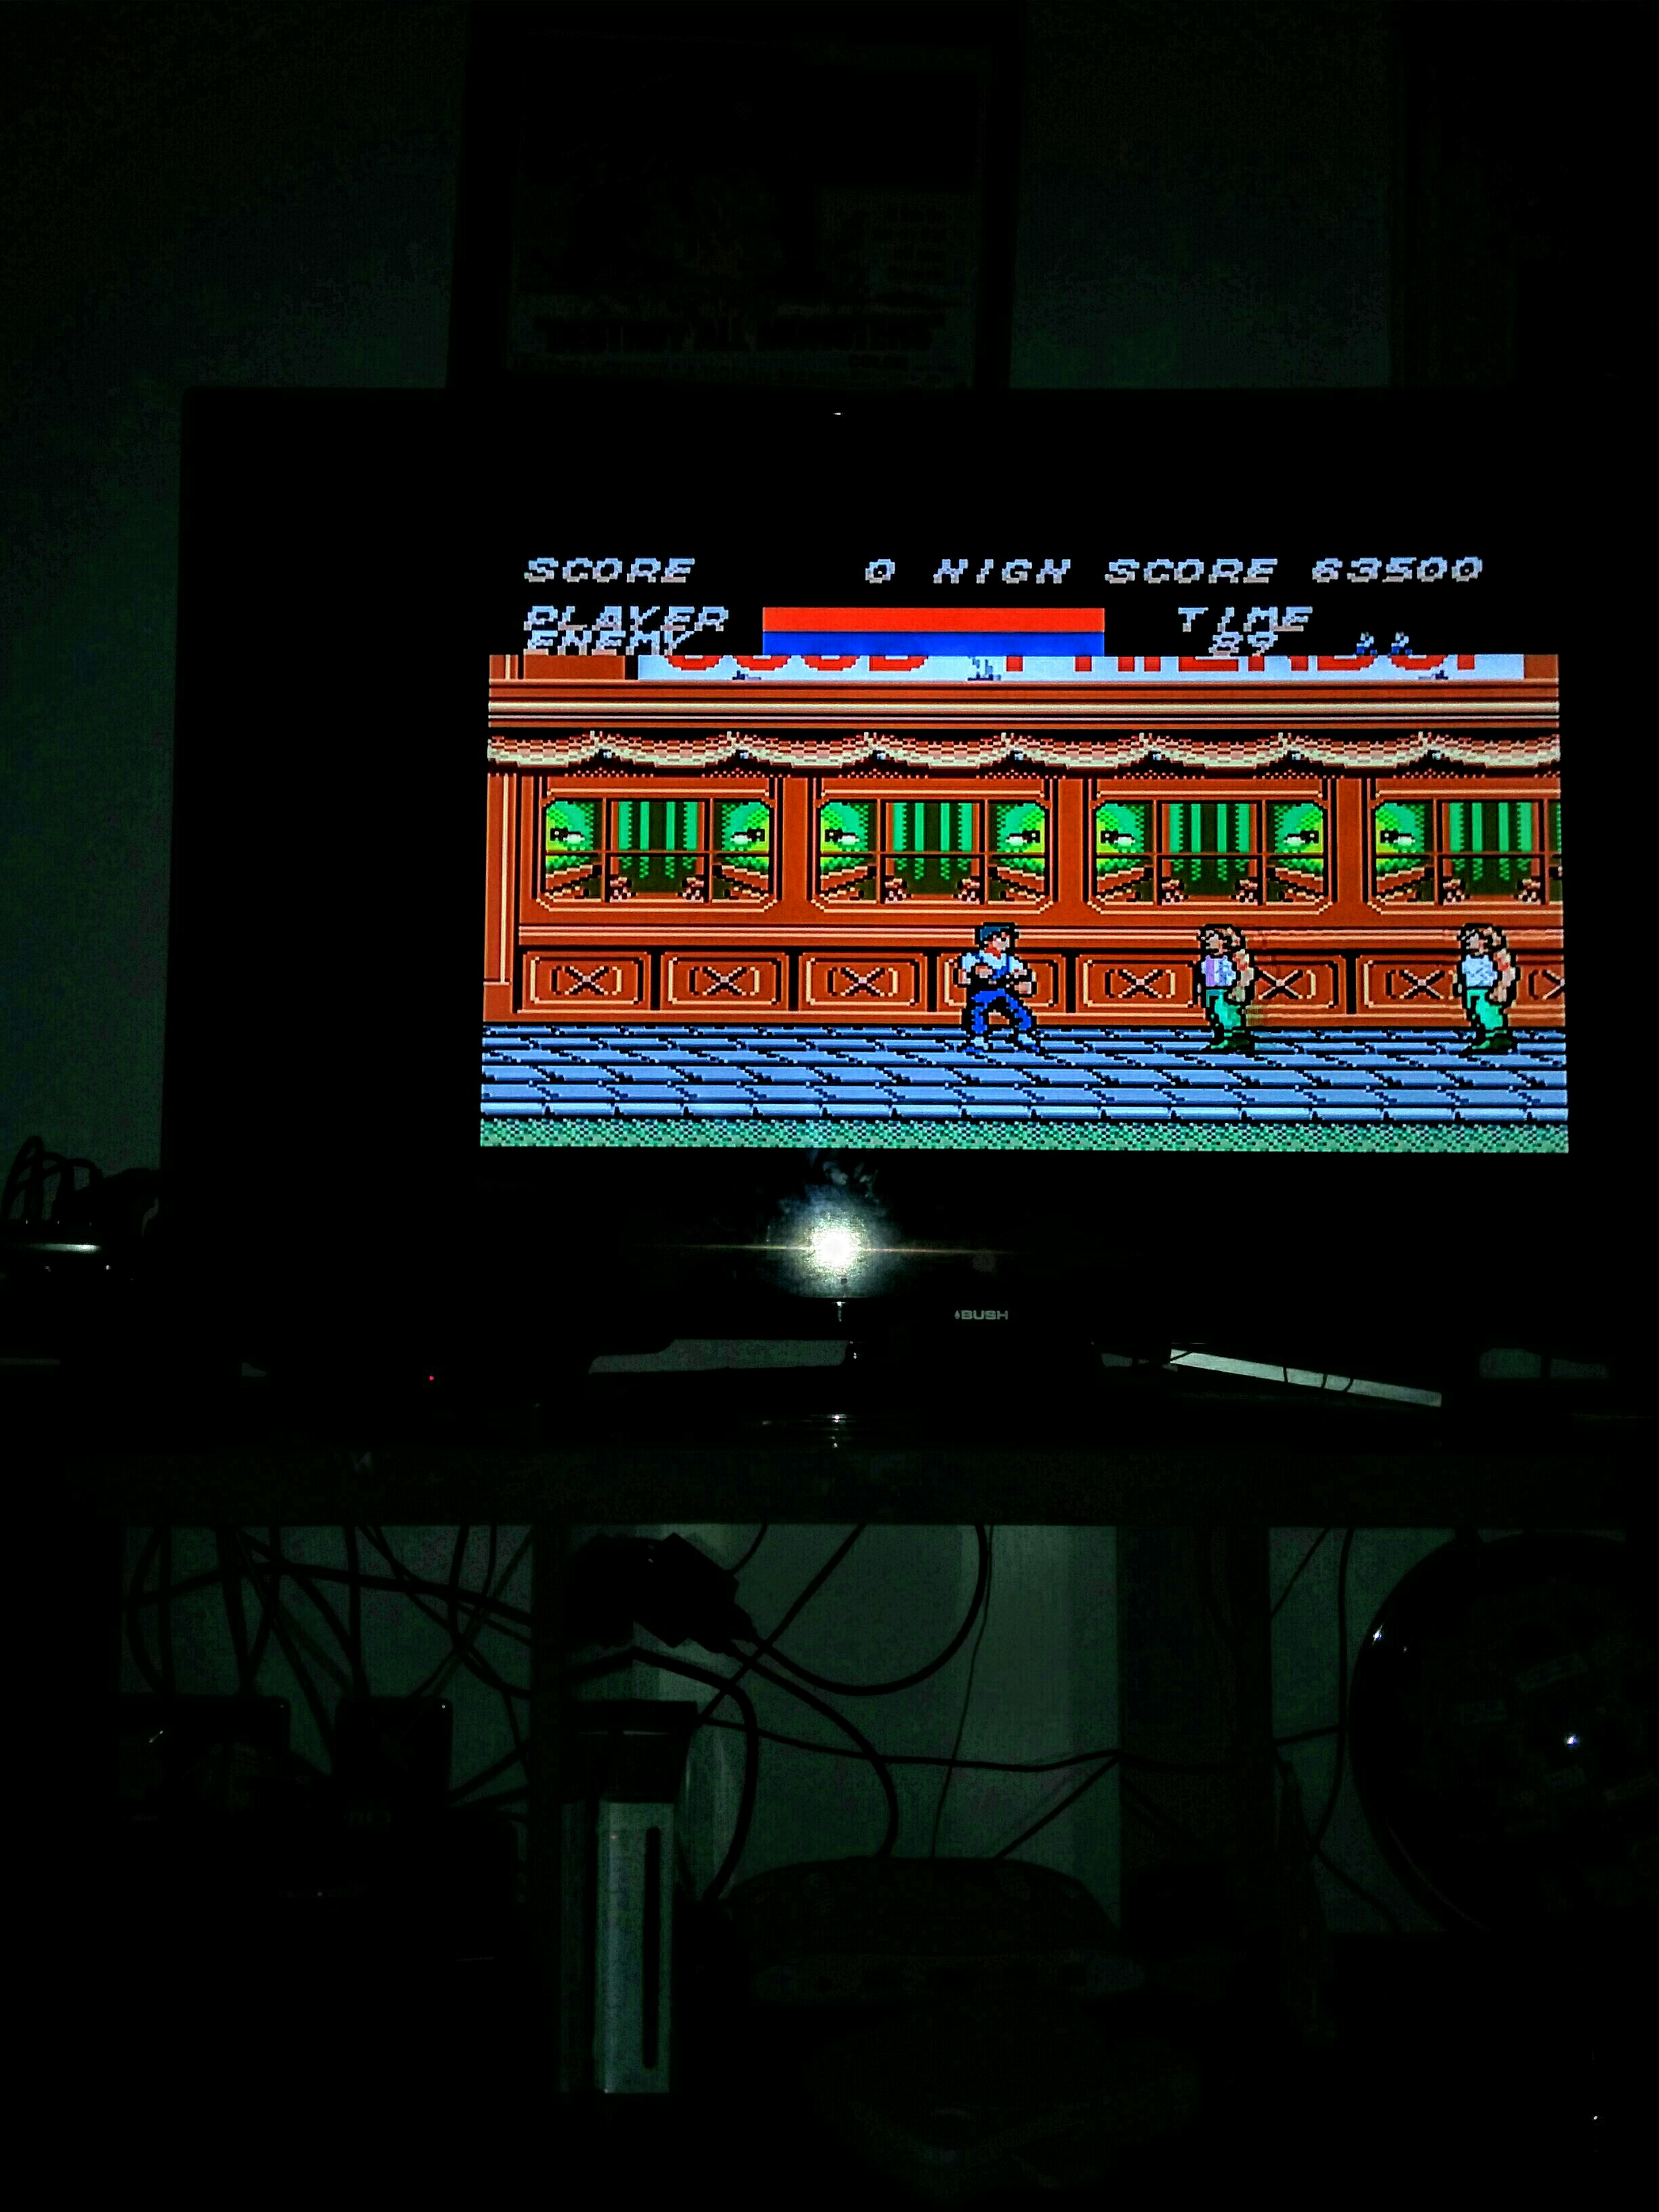 mechafatnick: Vigilante (Sega Master System) 63,500 points on 2016-05-13 00:36:32